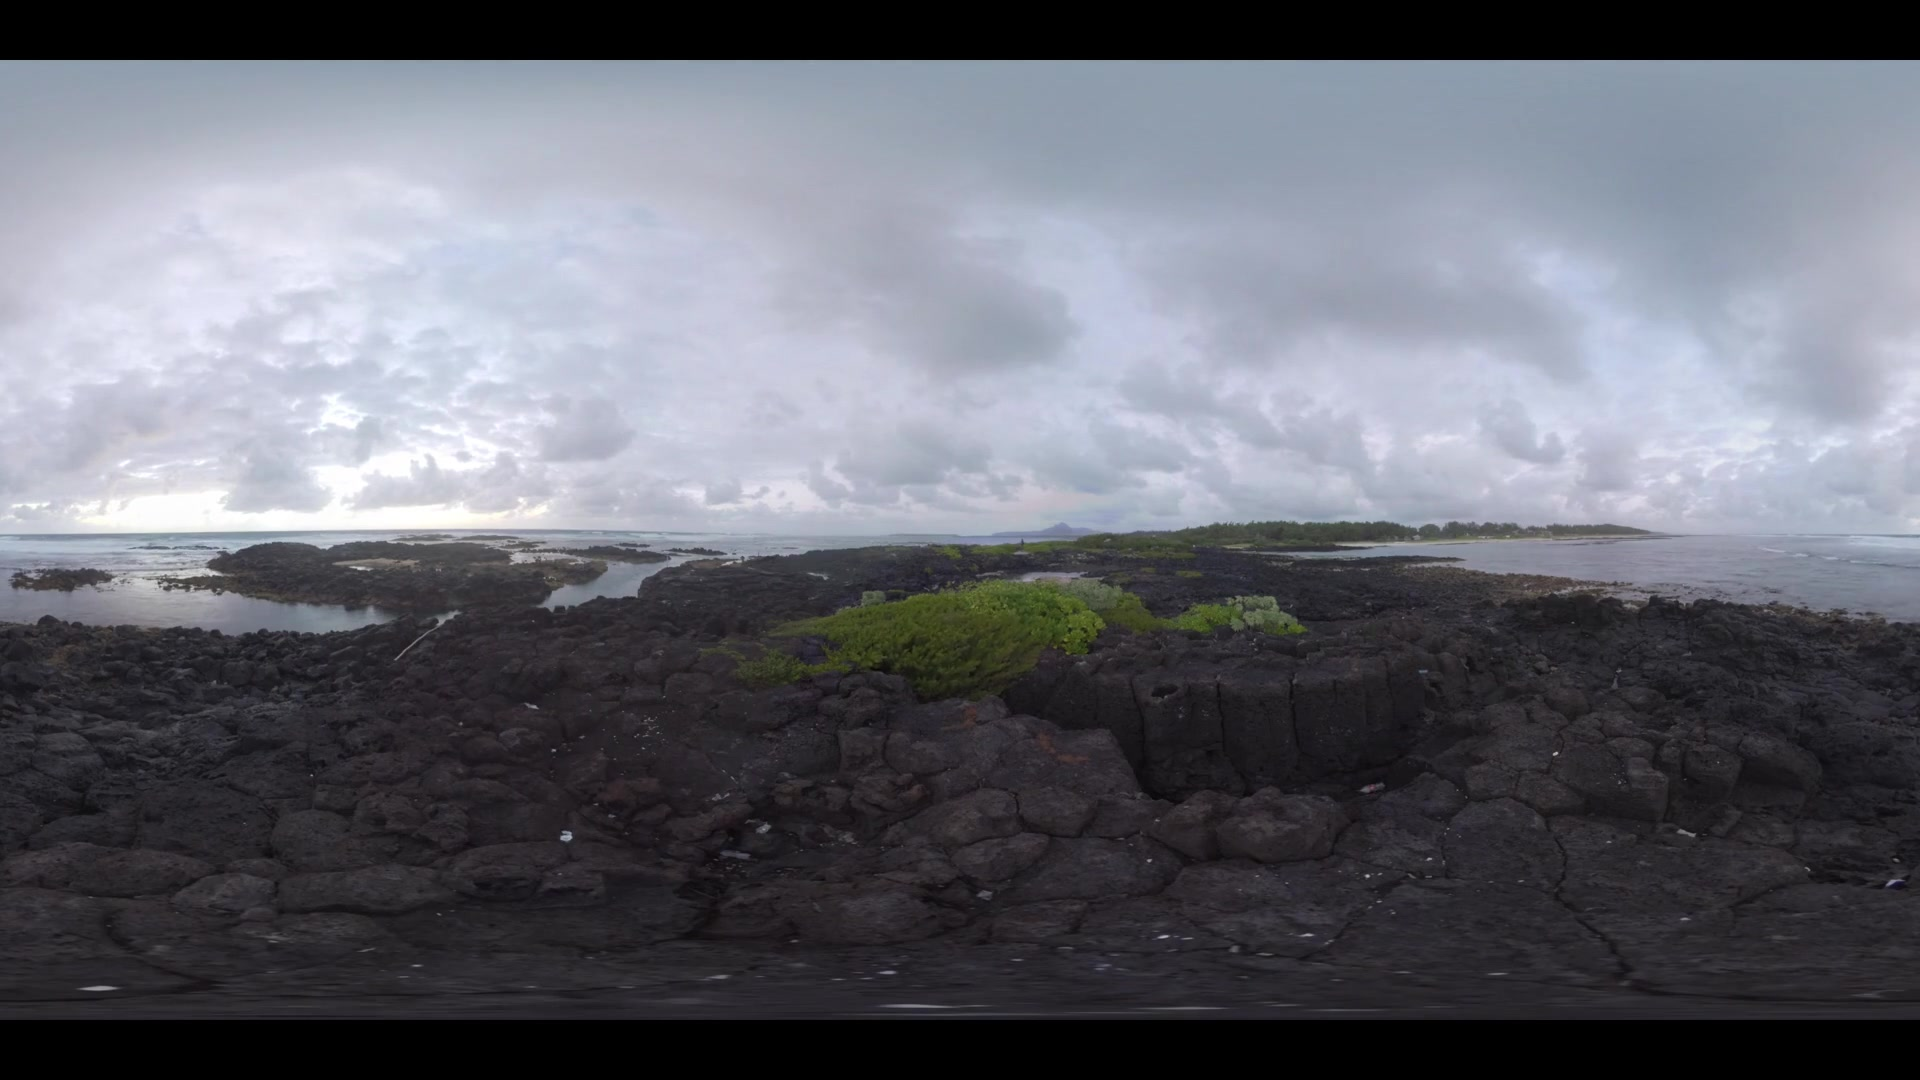 360 VR video. View from the black volcanic rocks to the ocean and distant coast with green trees. Cloudy sky over Mauritius island